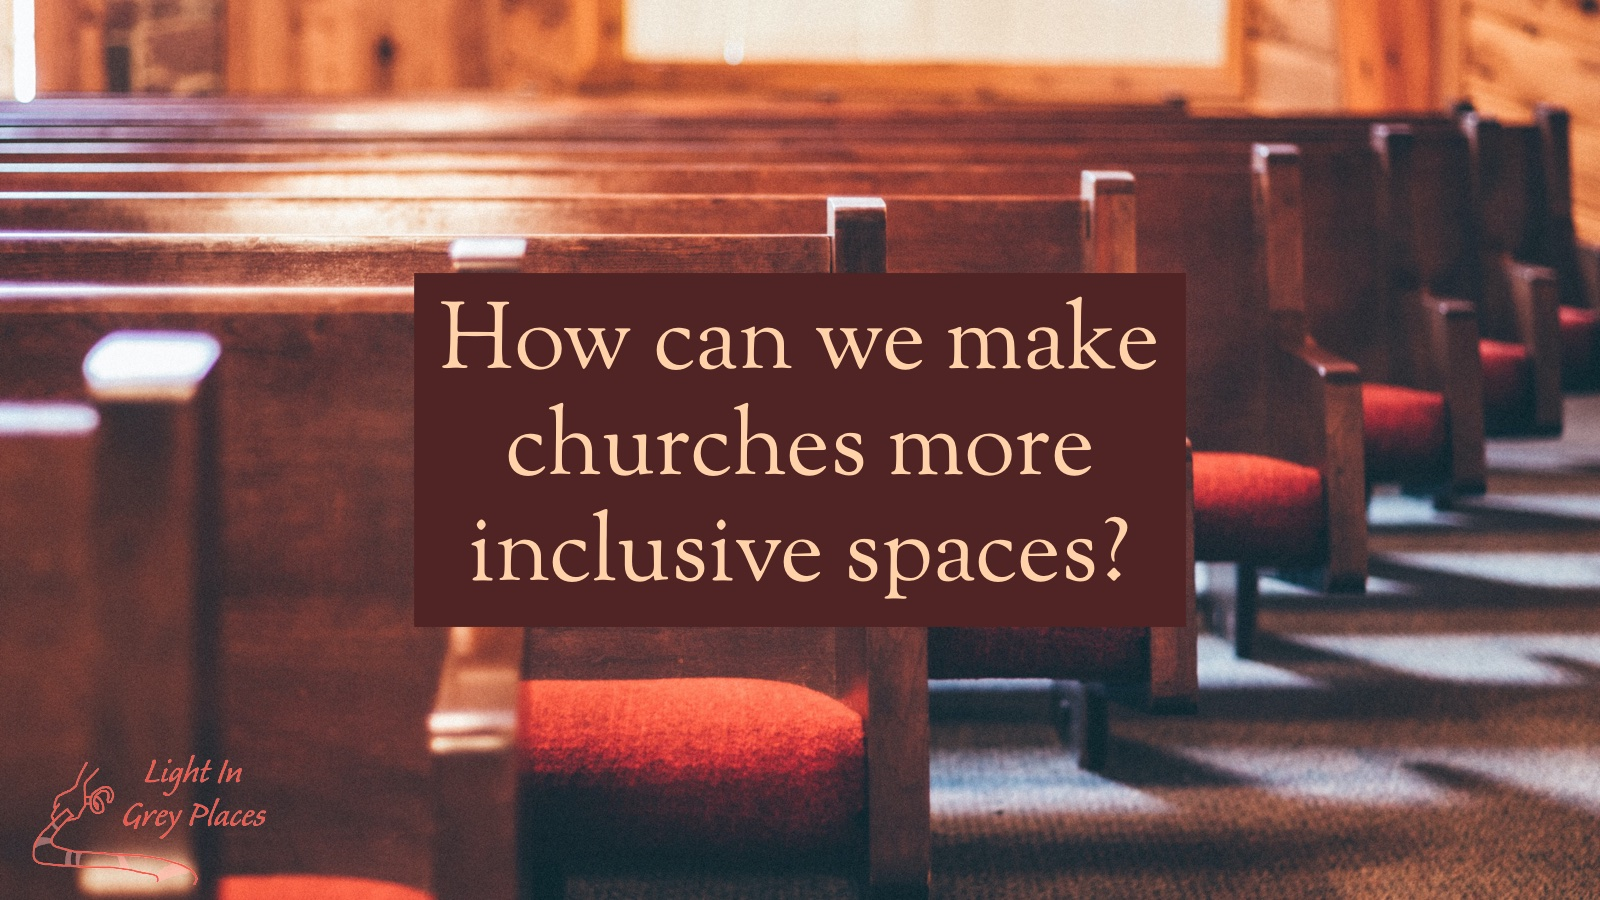 Rows of pews in a church. Text over the top: How can we make churches more inclusive spaces? Light in Grey Places